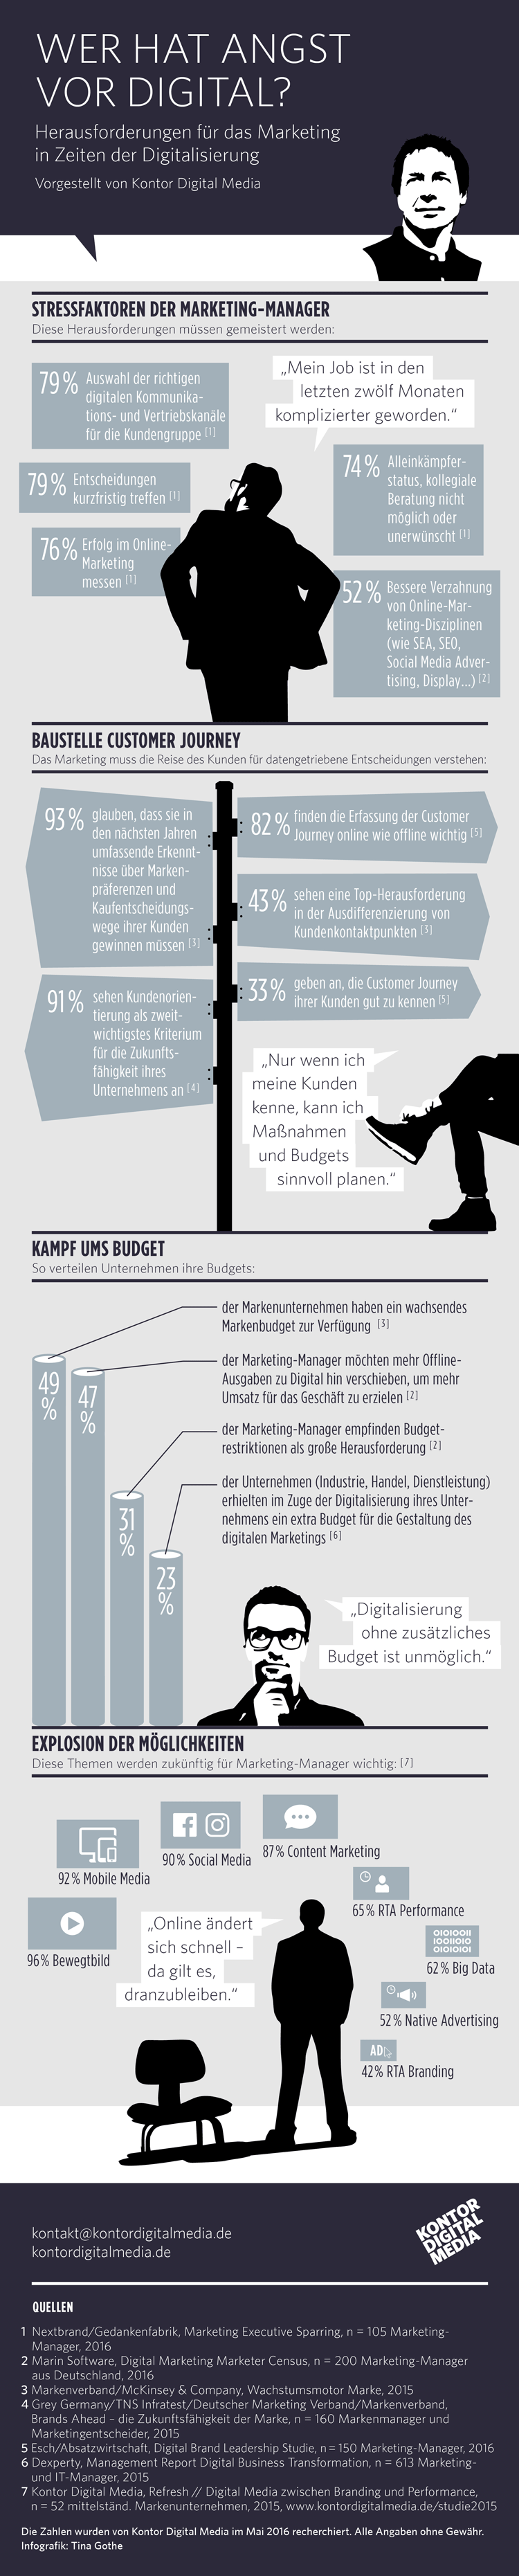 Herausforderung Digitalisierung im Marketing – Infografik